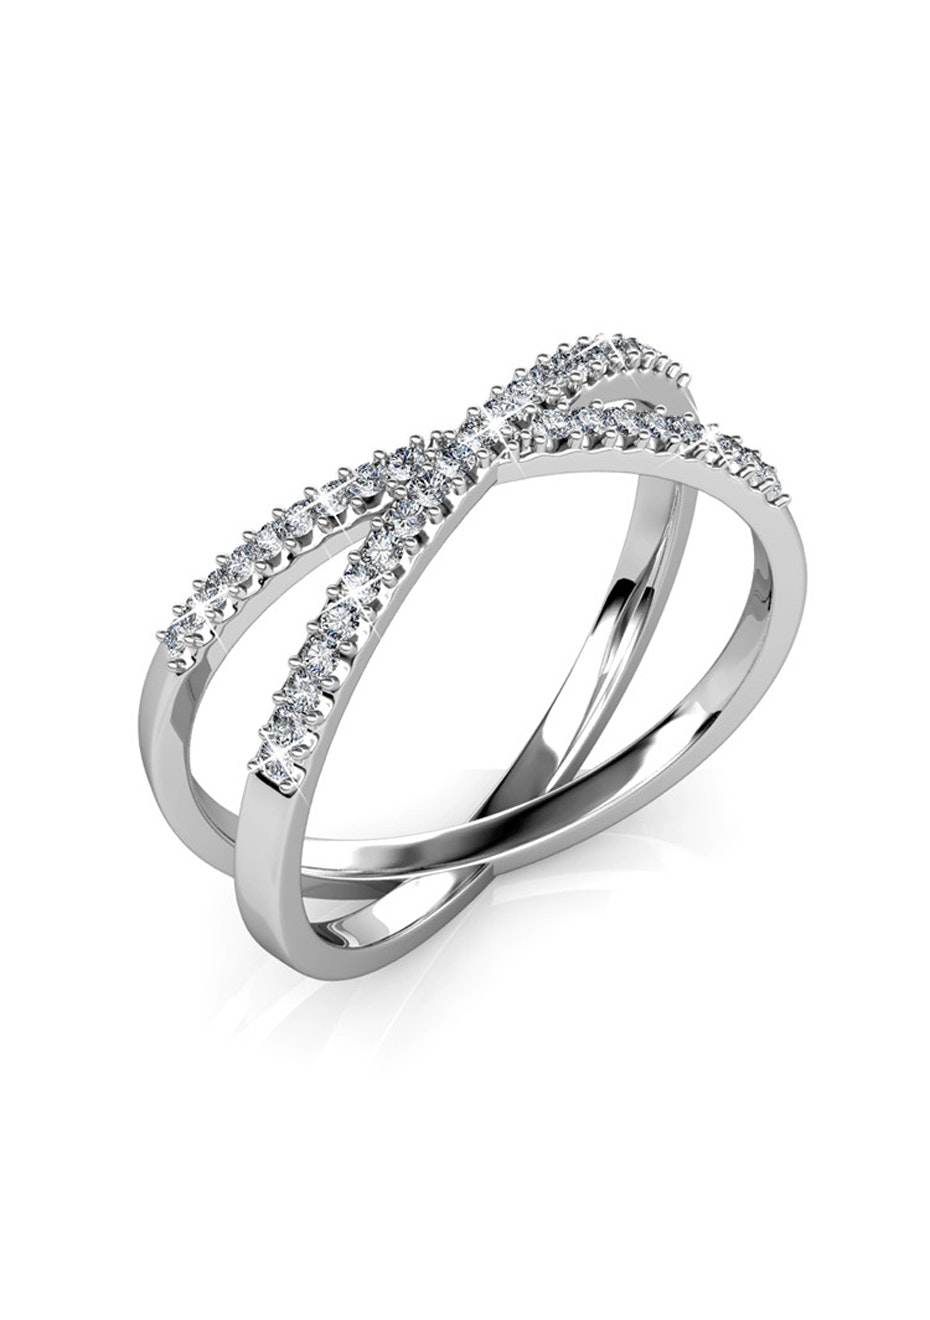 Revolve White Gold Ring Embellished with Crystals from Swarovski